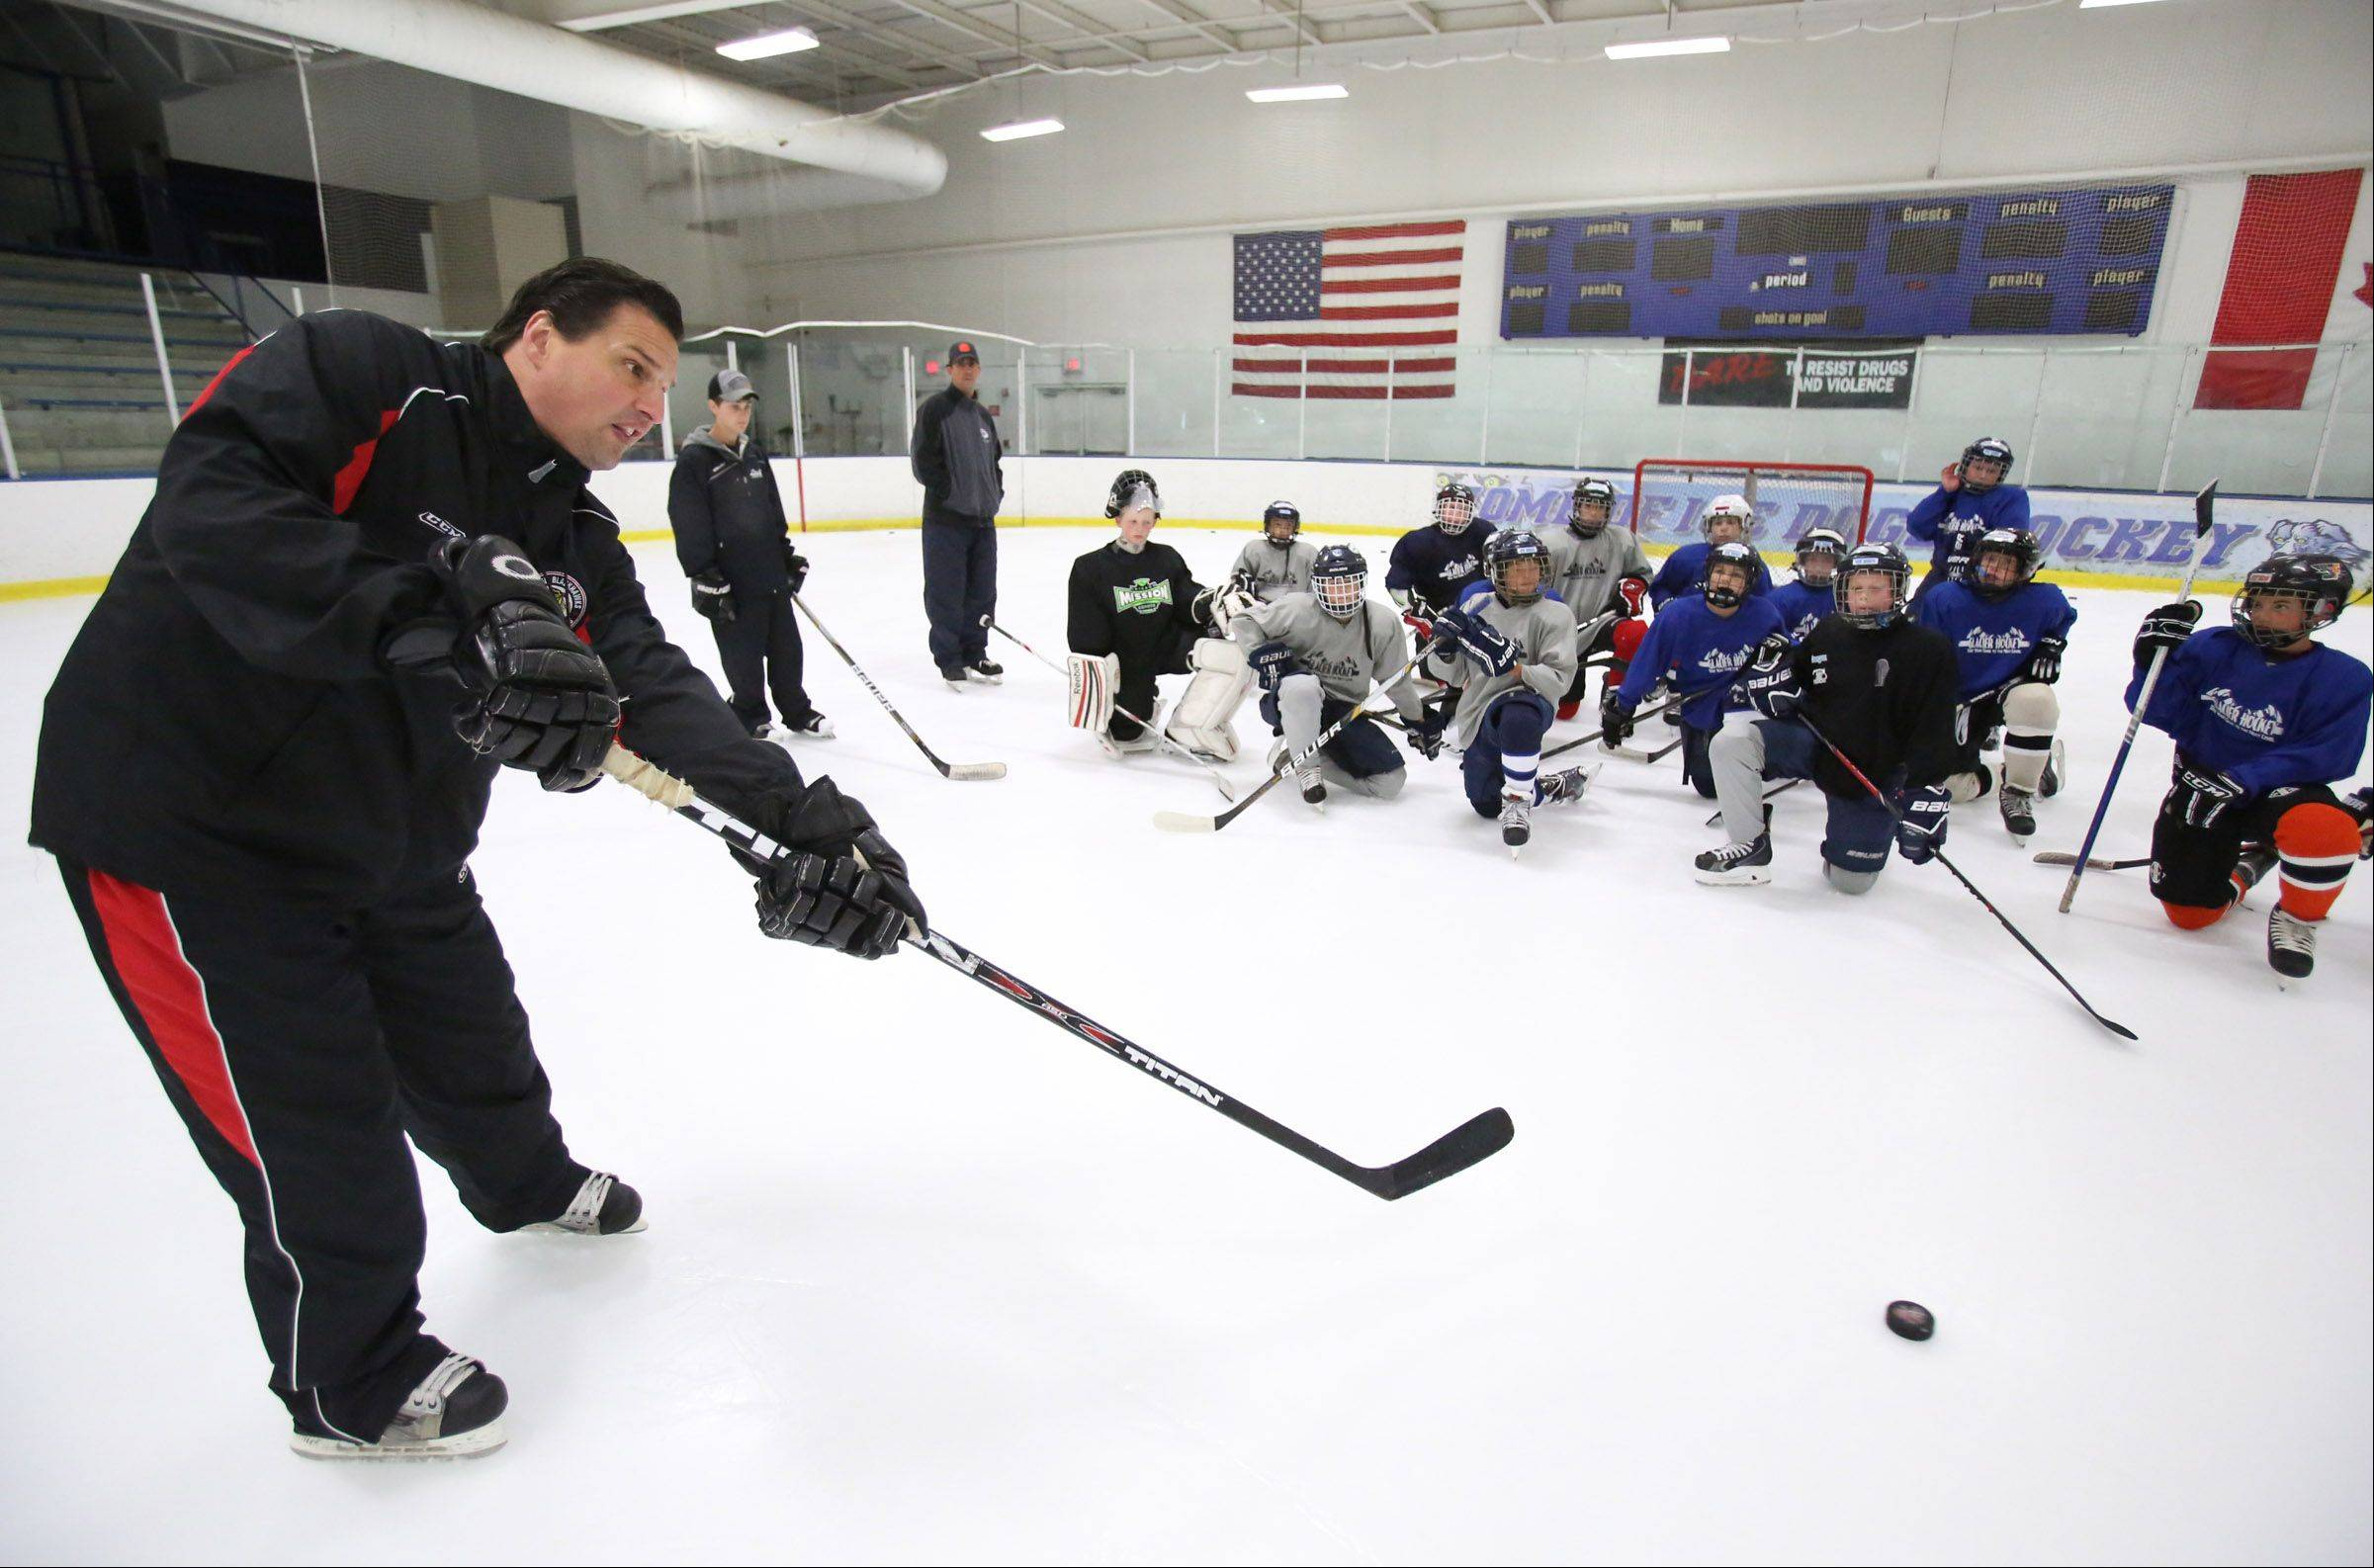 Hockey campers at Glacier Ice Arena in Vernon Hills receive instruction Friday from Eddie Olczyk, a television color analyst for the Chicago Blackhawks and NBC Sports. Olczyk played for the Hawks and is a U.S. Hockey Hall of Famer.